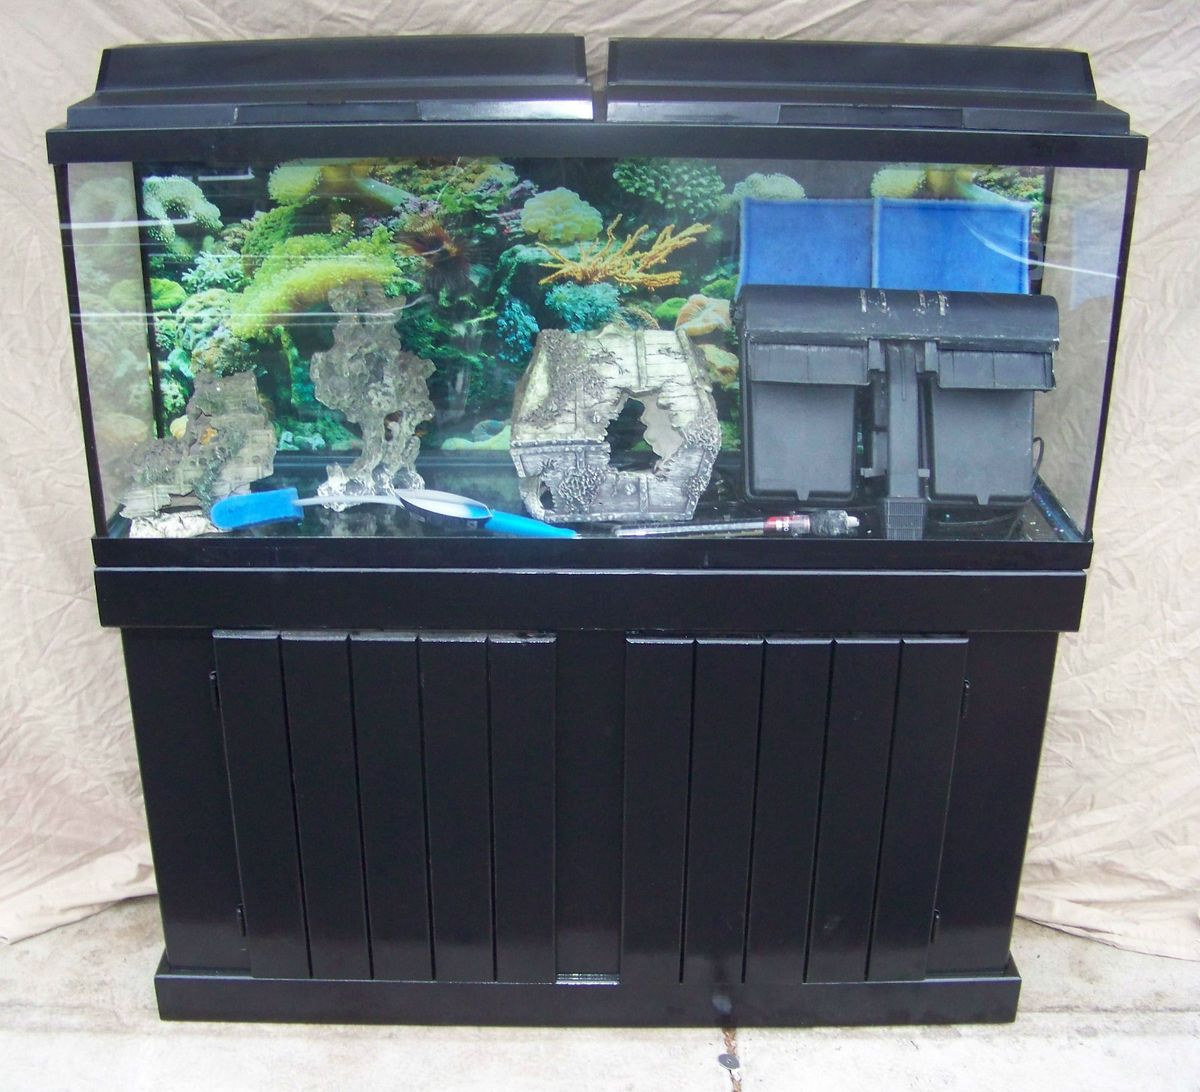 55 gallon fish tank and stand complete 55 gallon fish for 55 gallon fish tank stand